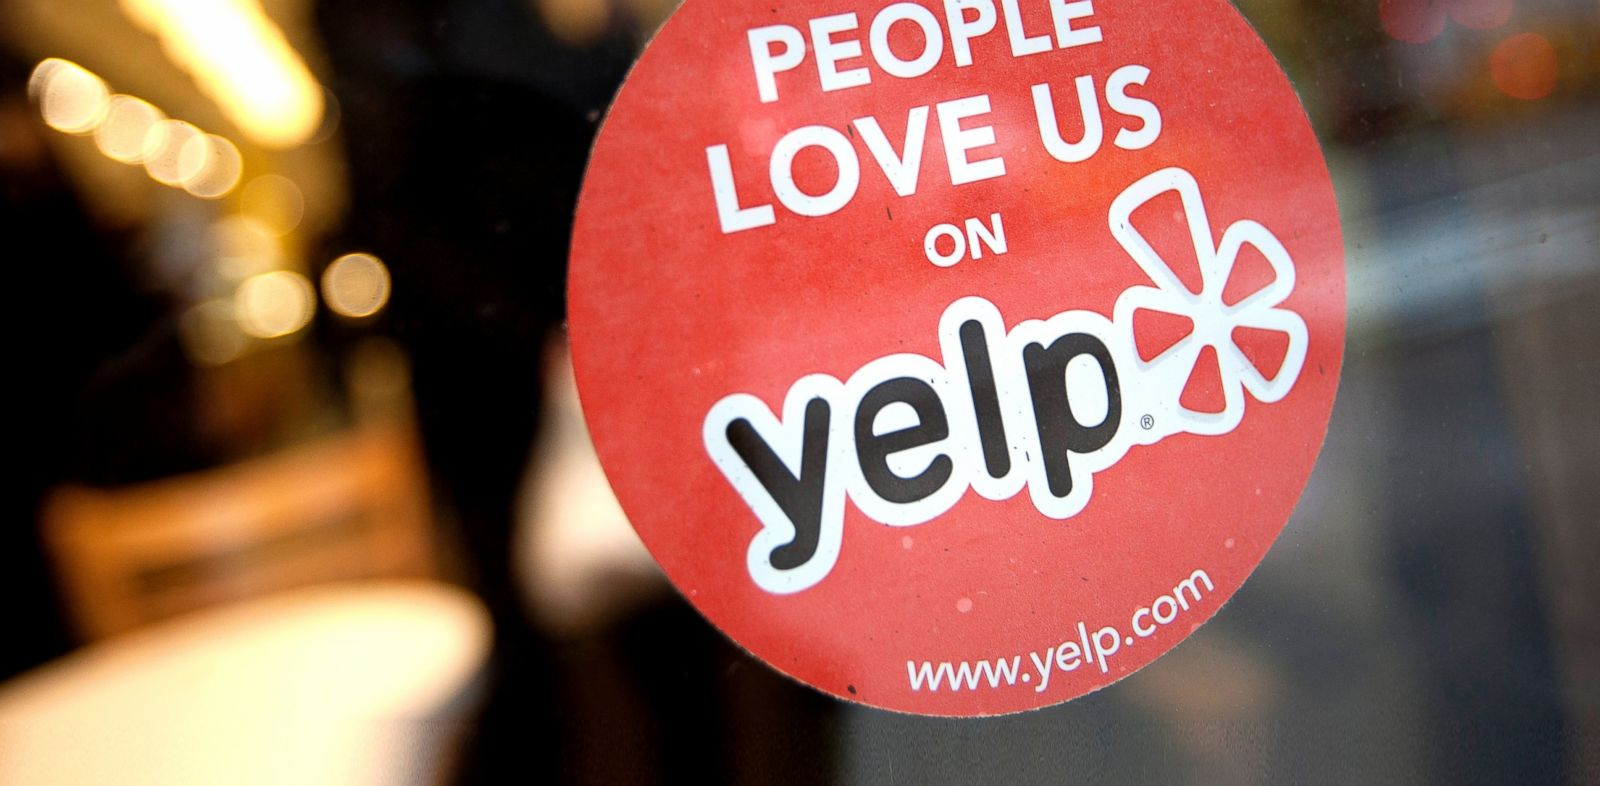 PHOTO: The Yelp Inc. logo is displayed in the window of a restaurant in New York, March 1, 2012.